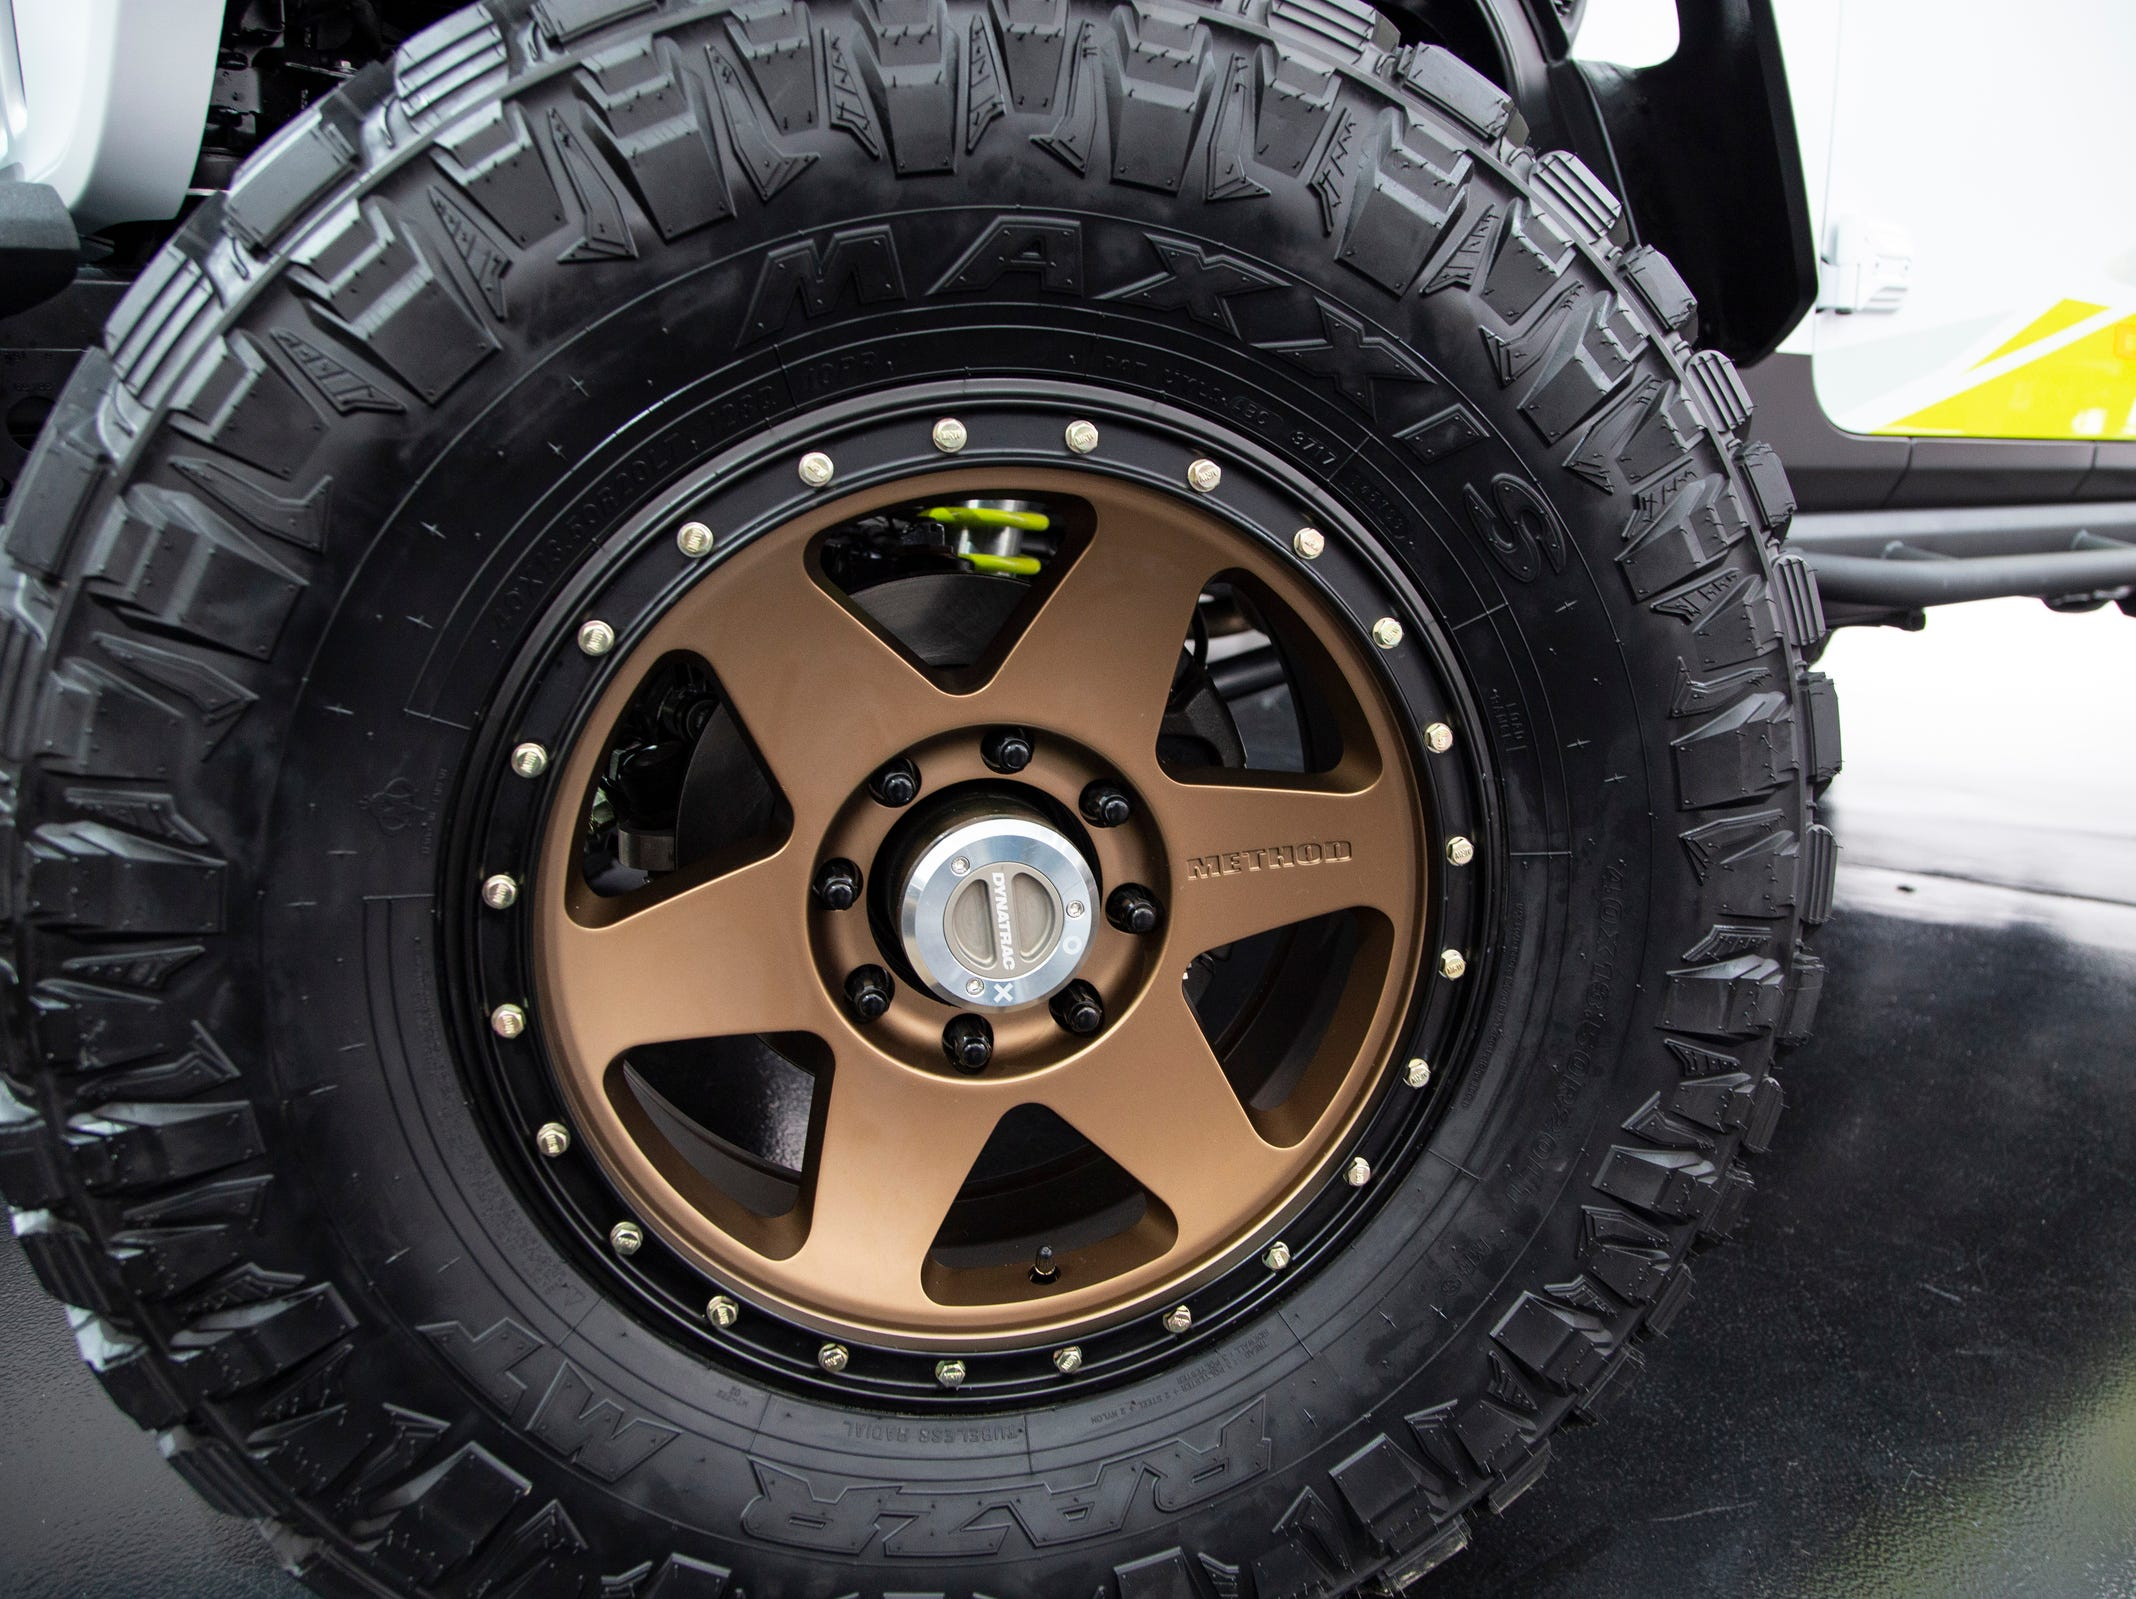 Jeep and Mopar brands debut six concept vehicles including the Jeep Flatbill Friday, April 5, 2019 at the Fiat Chrysler Tech Center and headquarters for the 53rd annual Moab Easter Jeep Safari. The Jeep Flatbill is a truck dedicated to dirt bike riding it is powered by a 3.6-liter  Pentastar V-6 engine with a cold-air Mopar Intake and mated to an eight-speed automatic transmission and 40-inch tires.